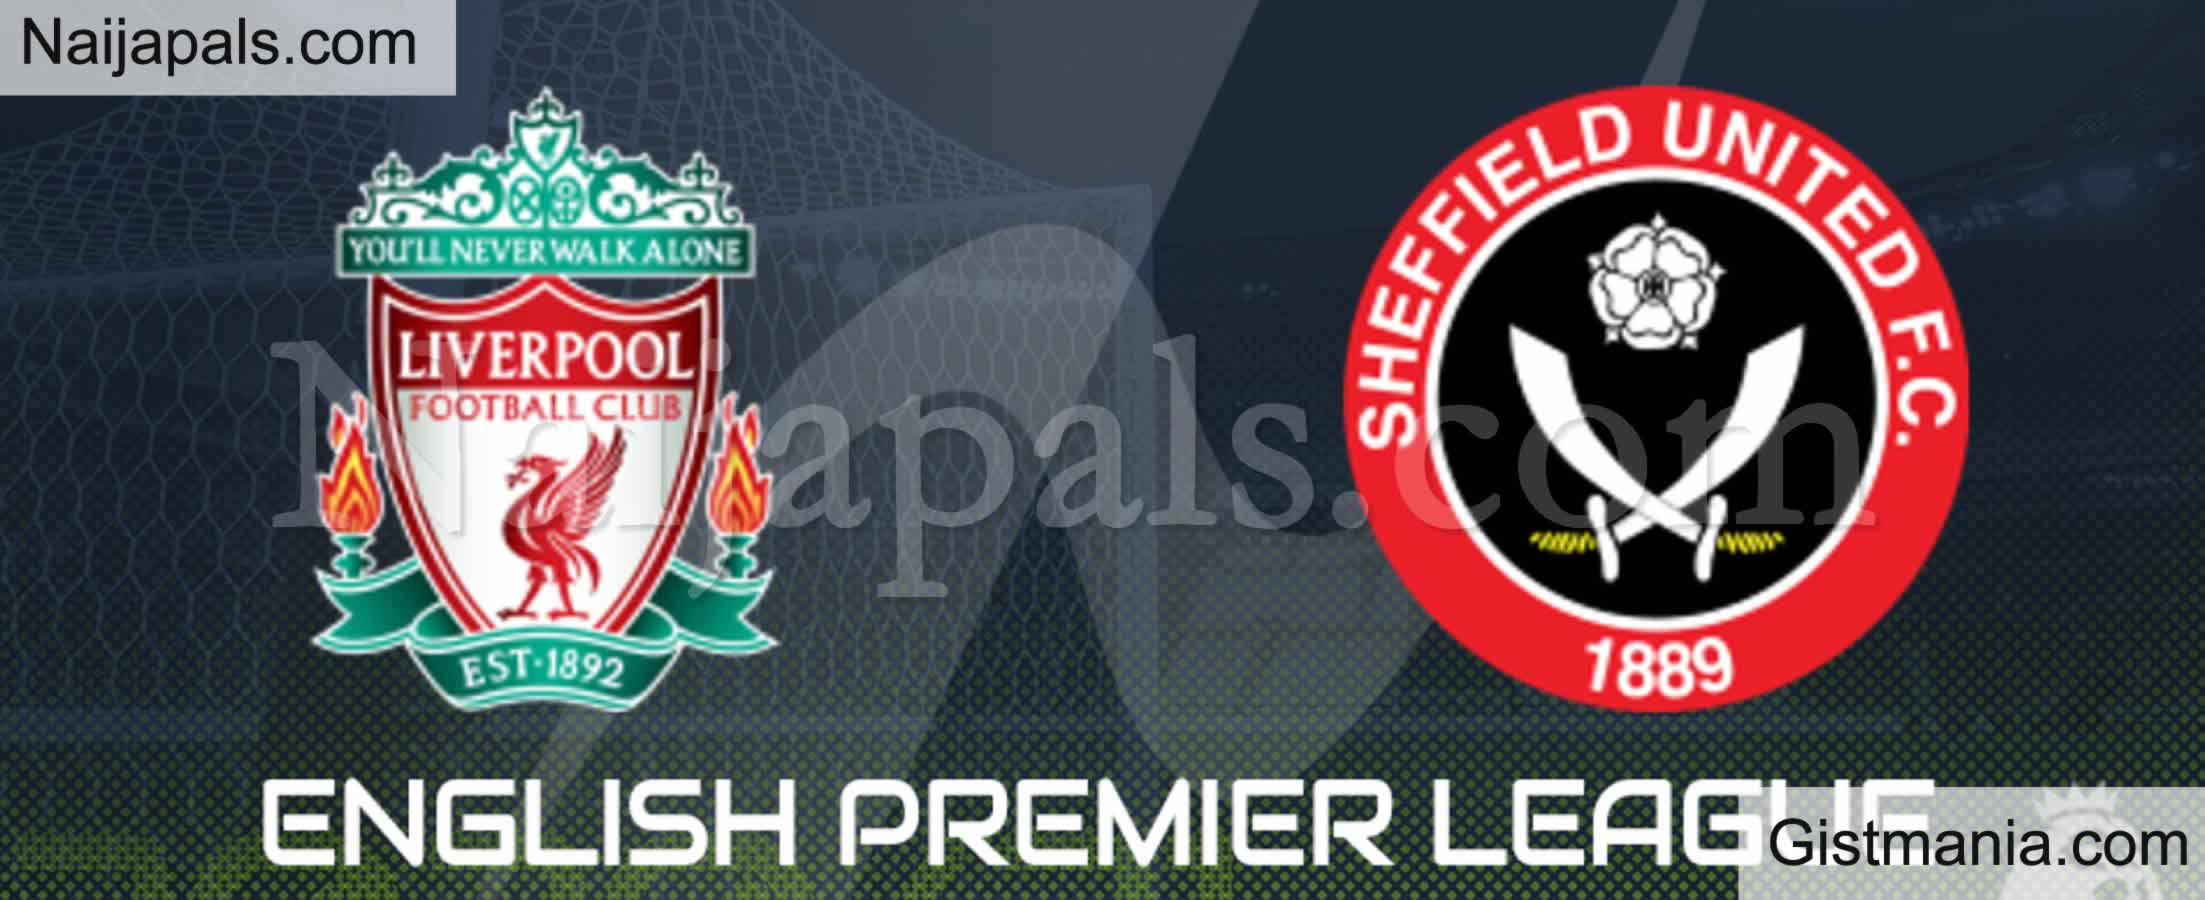 <img alt='.' class='lazyload' data-src='https://img.gistmania.com/emot/soccer.gif' /> <b>Liverpool v Sheffield United : English Premier League Match, Team News, Goal Scorers and Stats</b>